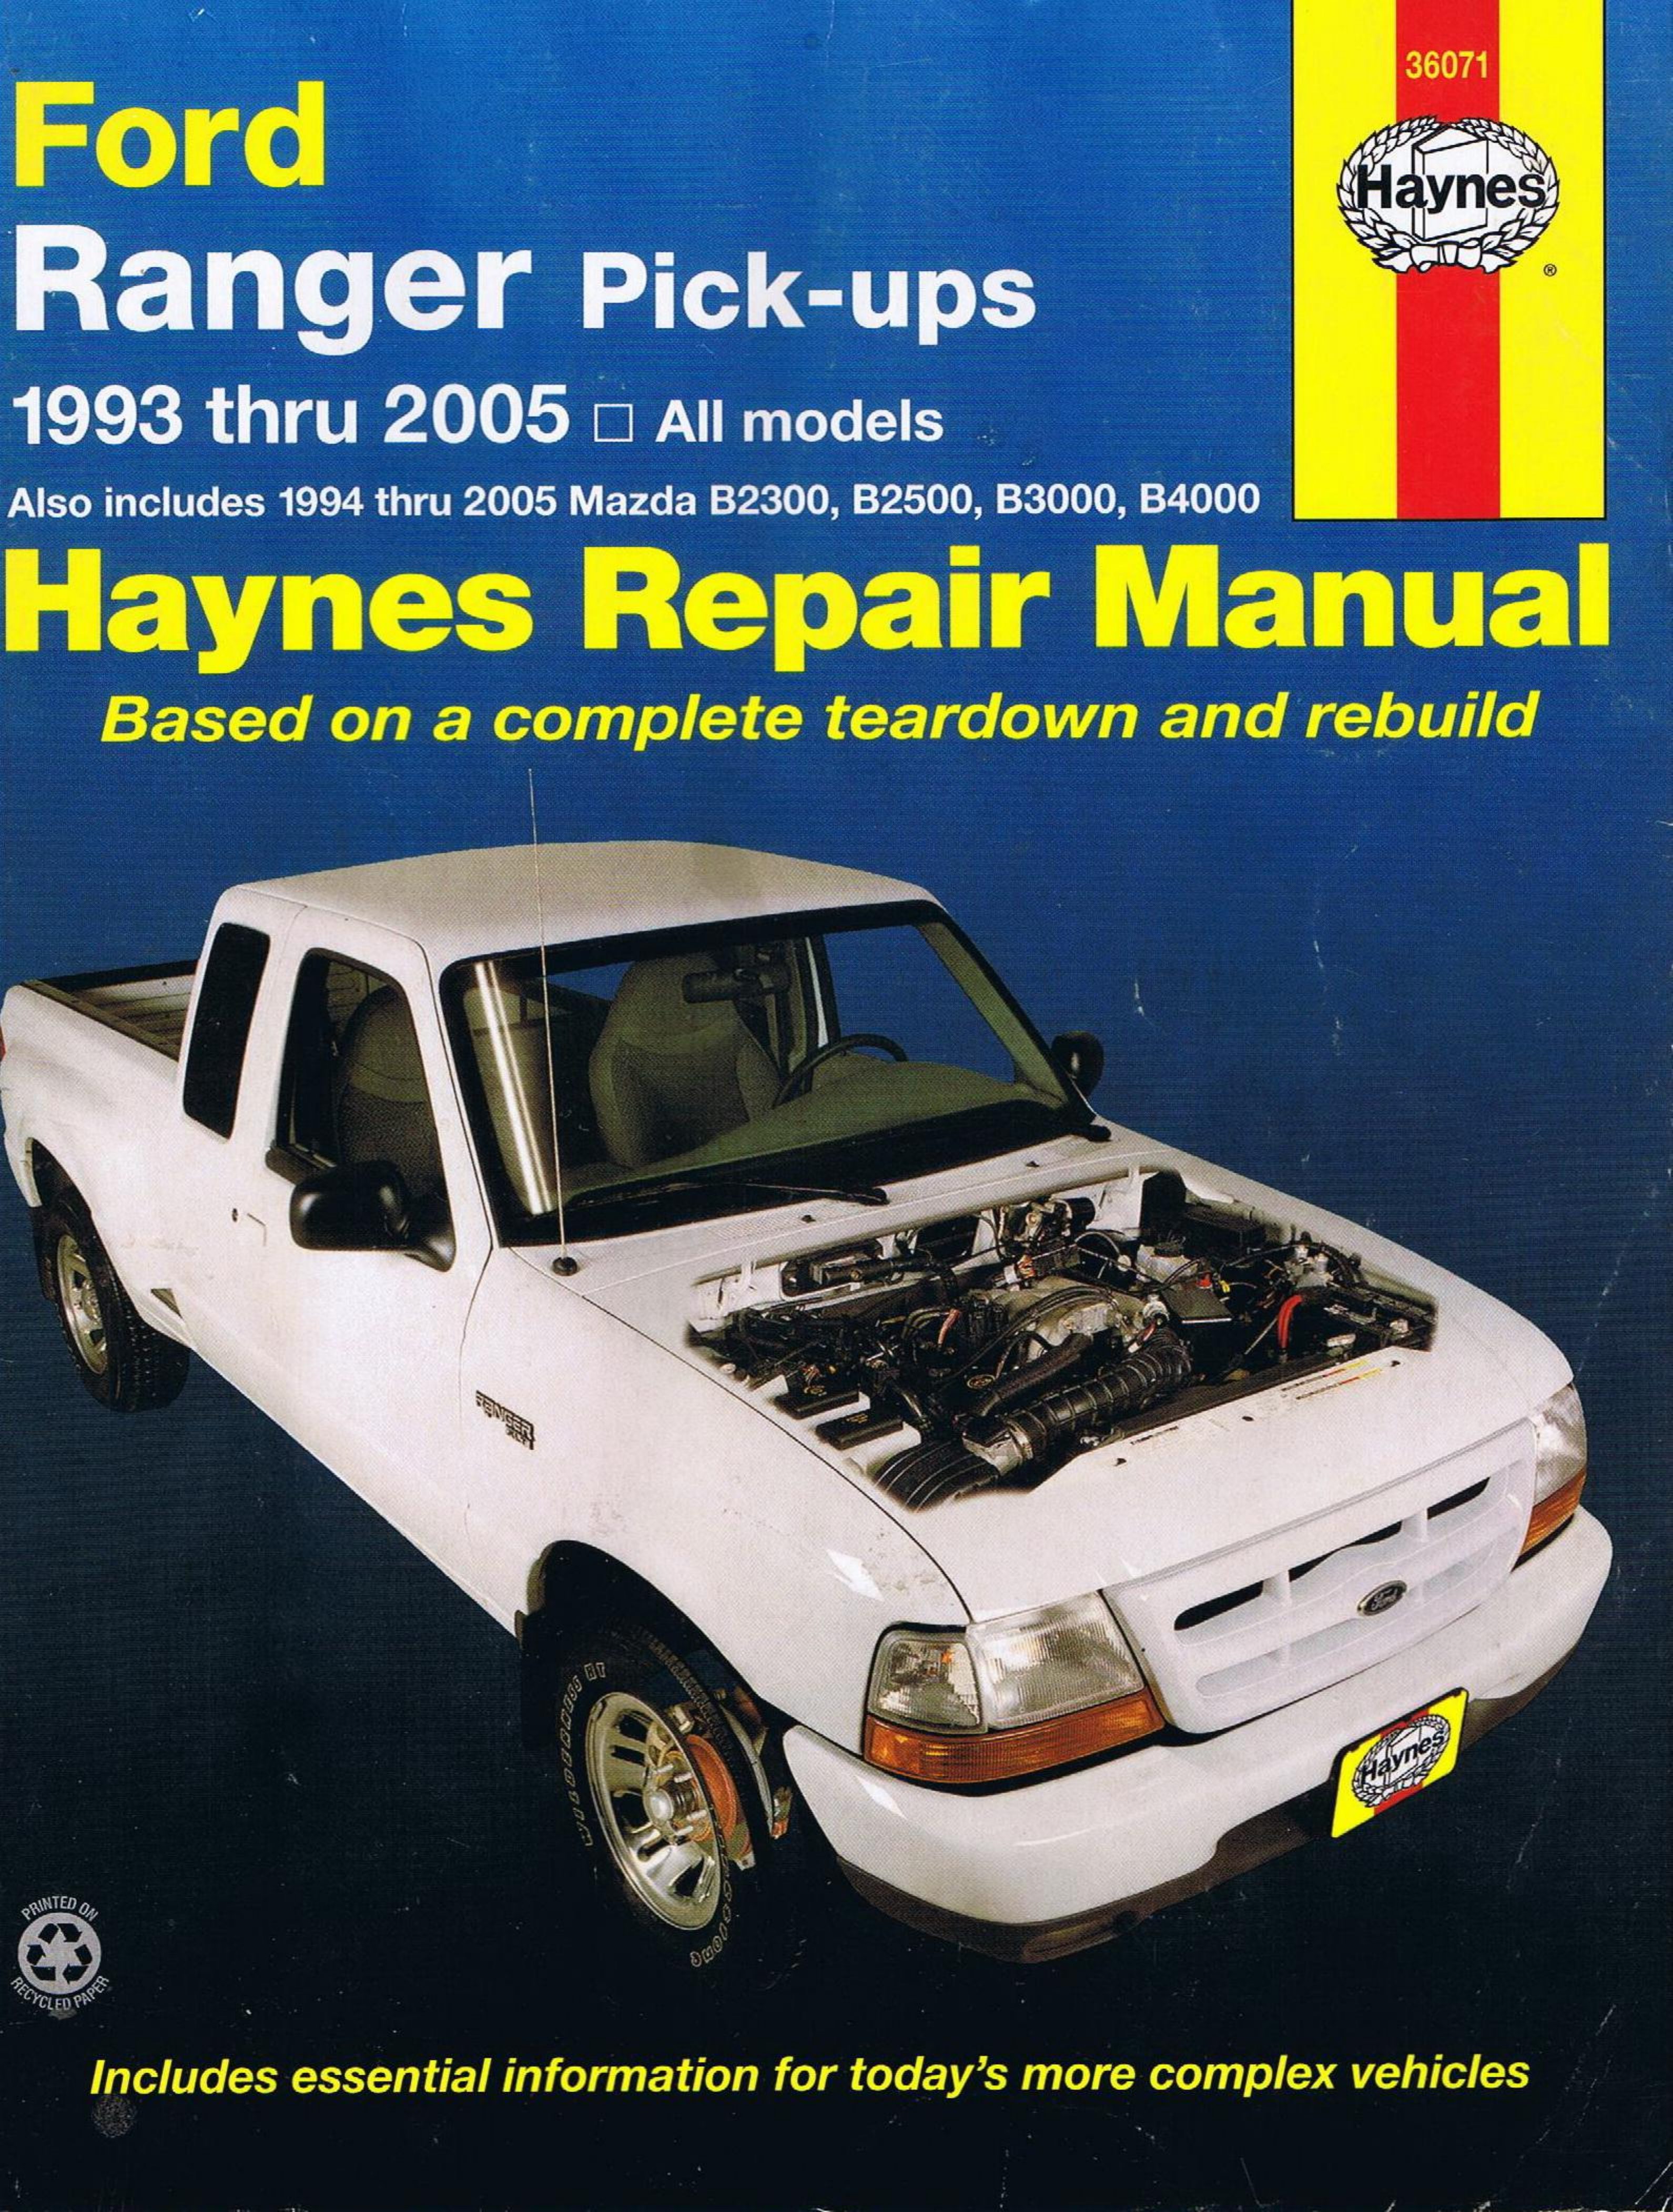 ford ranger 1993 2005 service manual pdf ford pinterest ford rh pinterest com 2001 Ford Ranger Repair Manual Ford Ranger 2.3 Turbo Diesel